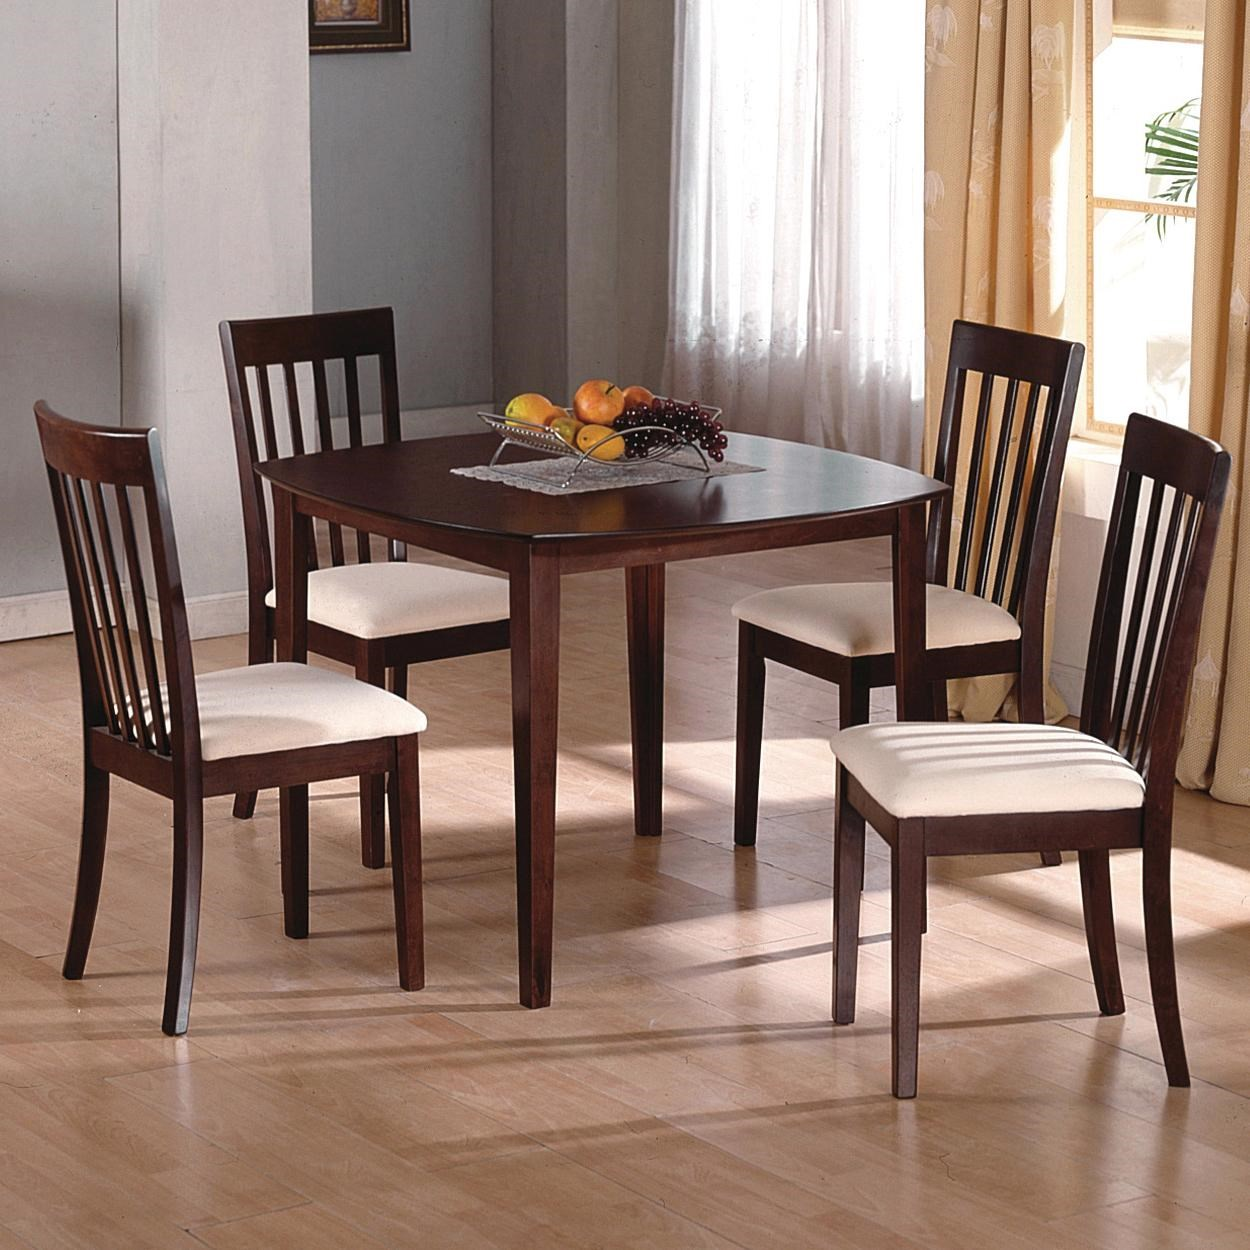 CM Ashland 5 Piece Kitchen Table And Upholstered Chairs Set